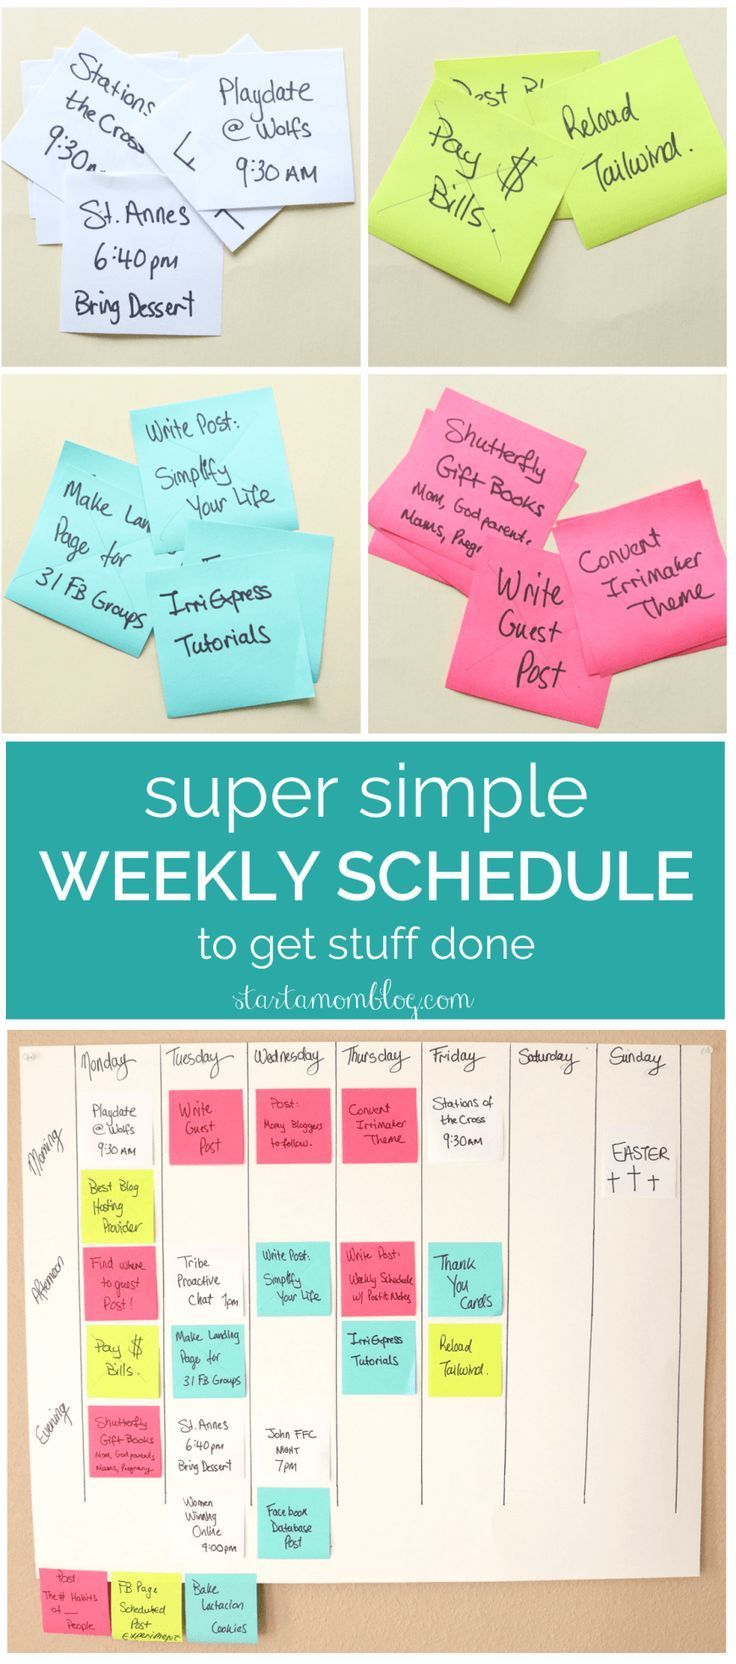 Super Simple Weekly Schedule to Get Stuff Done with Post-it Notes. This is how I Organize and Schedule my Life with Post it notes - Super Simple Hack!